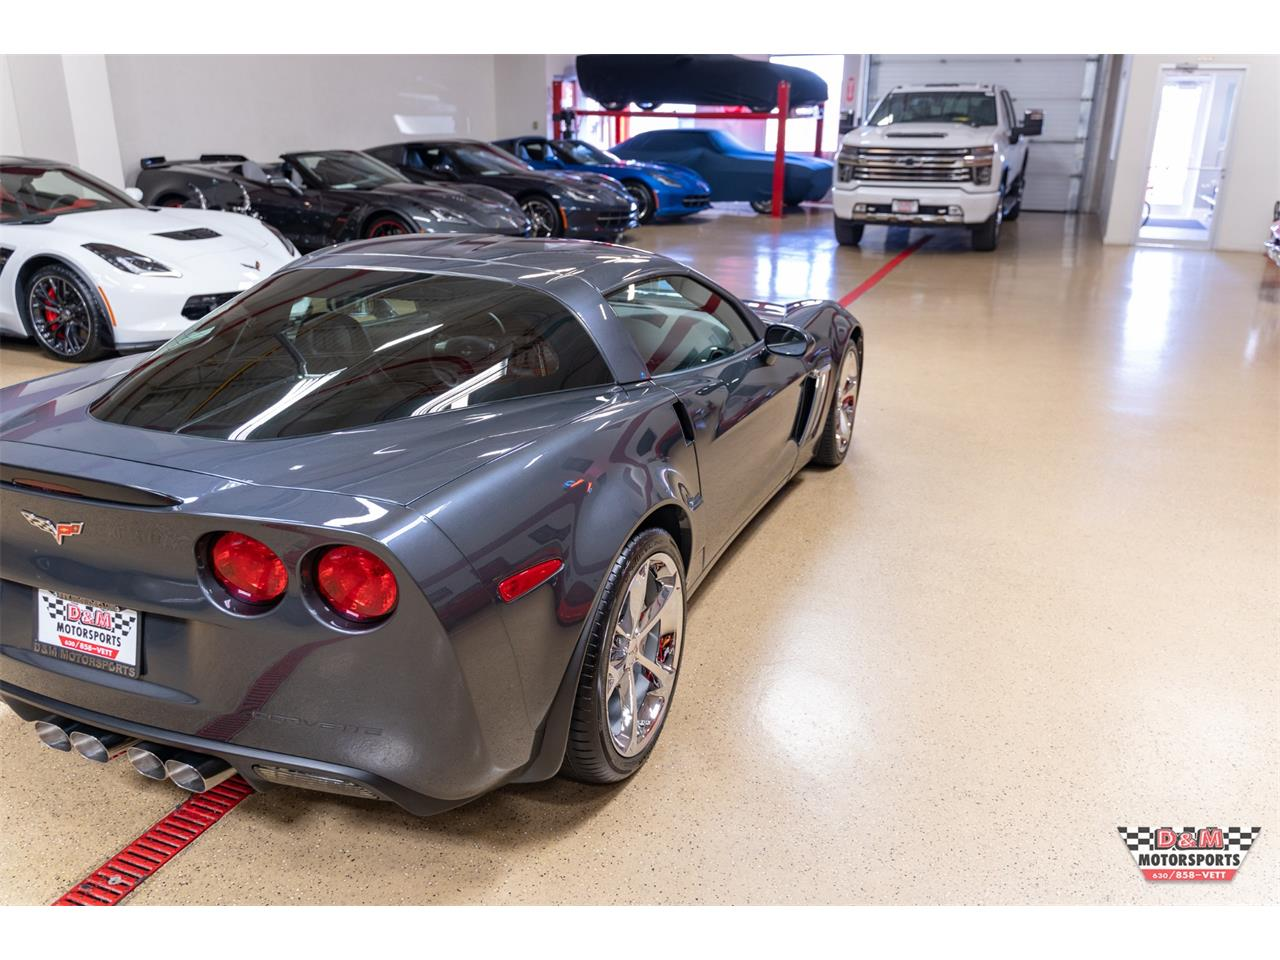 2010 Chevrolet Corvette (CC-1316753) for sale in Glen Ellyn, Illinois